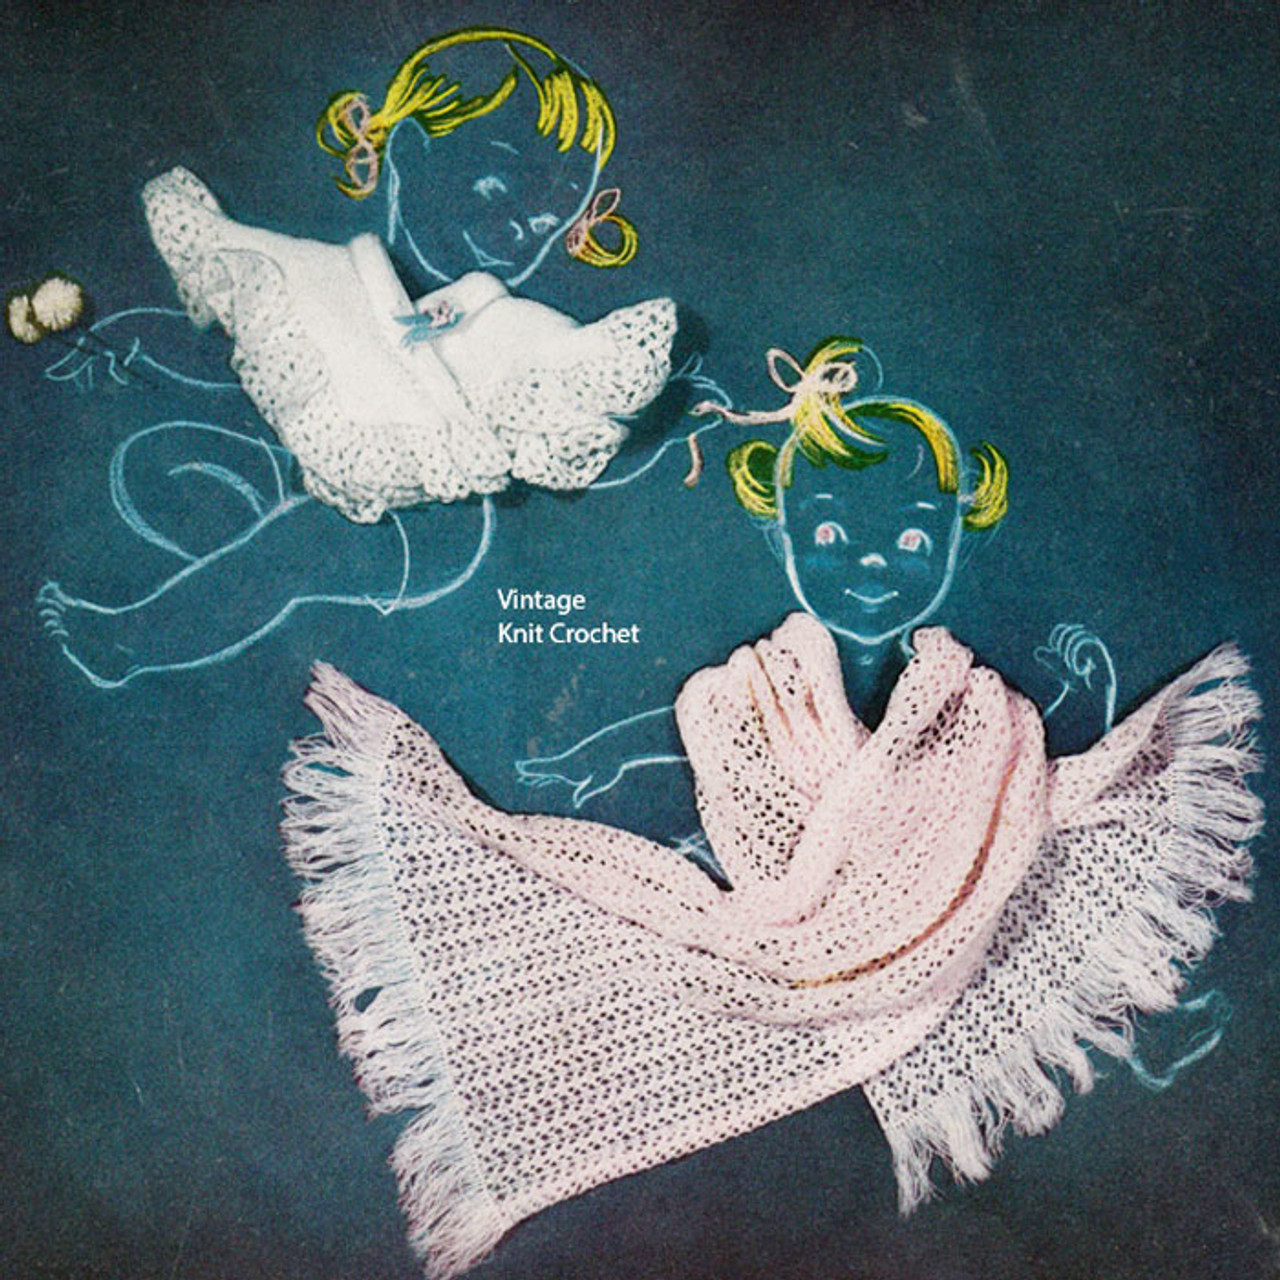 Knitted baby shoulderette, shawl pattern